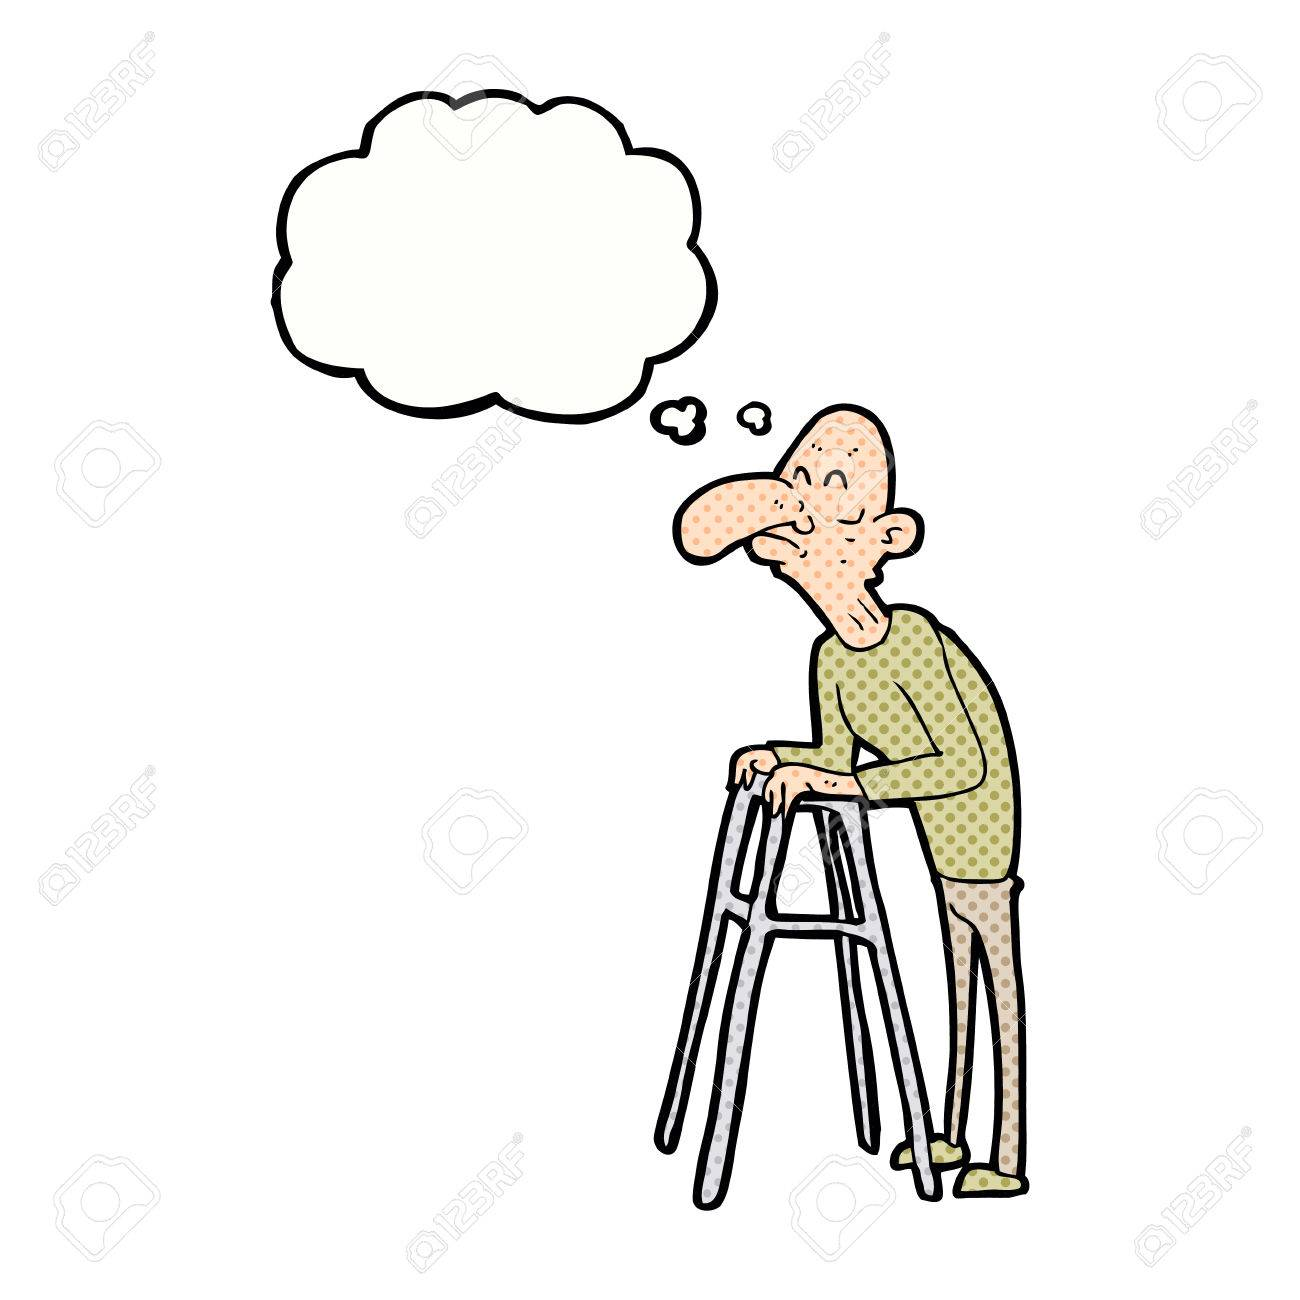 Cartoon Old Man With Walking Frame With Thought Bubble Royalty Free ...